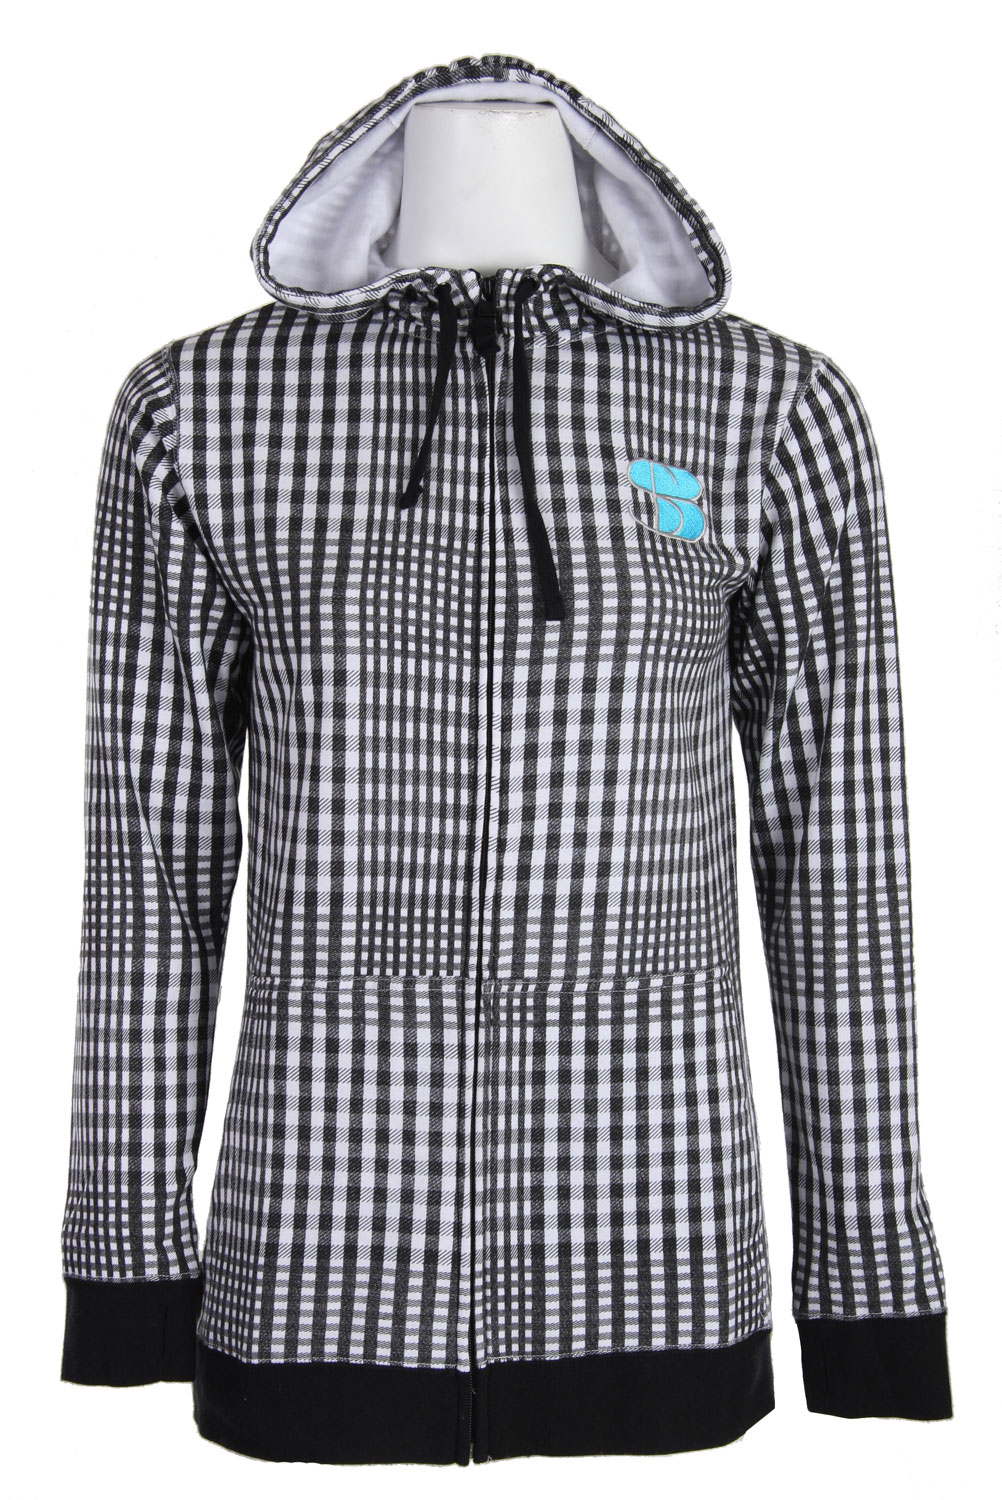 The Special Blend Gingham Shocker Hoodie is a wicked jacket. The colors are plain amazing will make any girl stand out. The hoodie is made with 80% cotton and 20% polyester which means that it provides warmth and will protect you from getting wet in the rain. It also has a hidden pocket to store your music player in. This jacket is really stylish and for this price, it is a steal. Anyone who loves to buy clothes should buy this jacket to add to their collection.Key Features of The Special Blend Gingham Shocker Women's Hoodie: Zip hooded sweatshirt 80% cotton 20% polyester Long fit Fitted hood Higher collar Thumbholes on cuff All over gingham print on body Garment wash for softer hand Chest embroidery Hidden mp3 pocket - $29.95